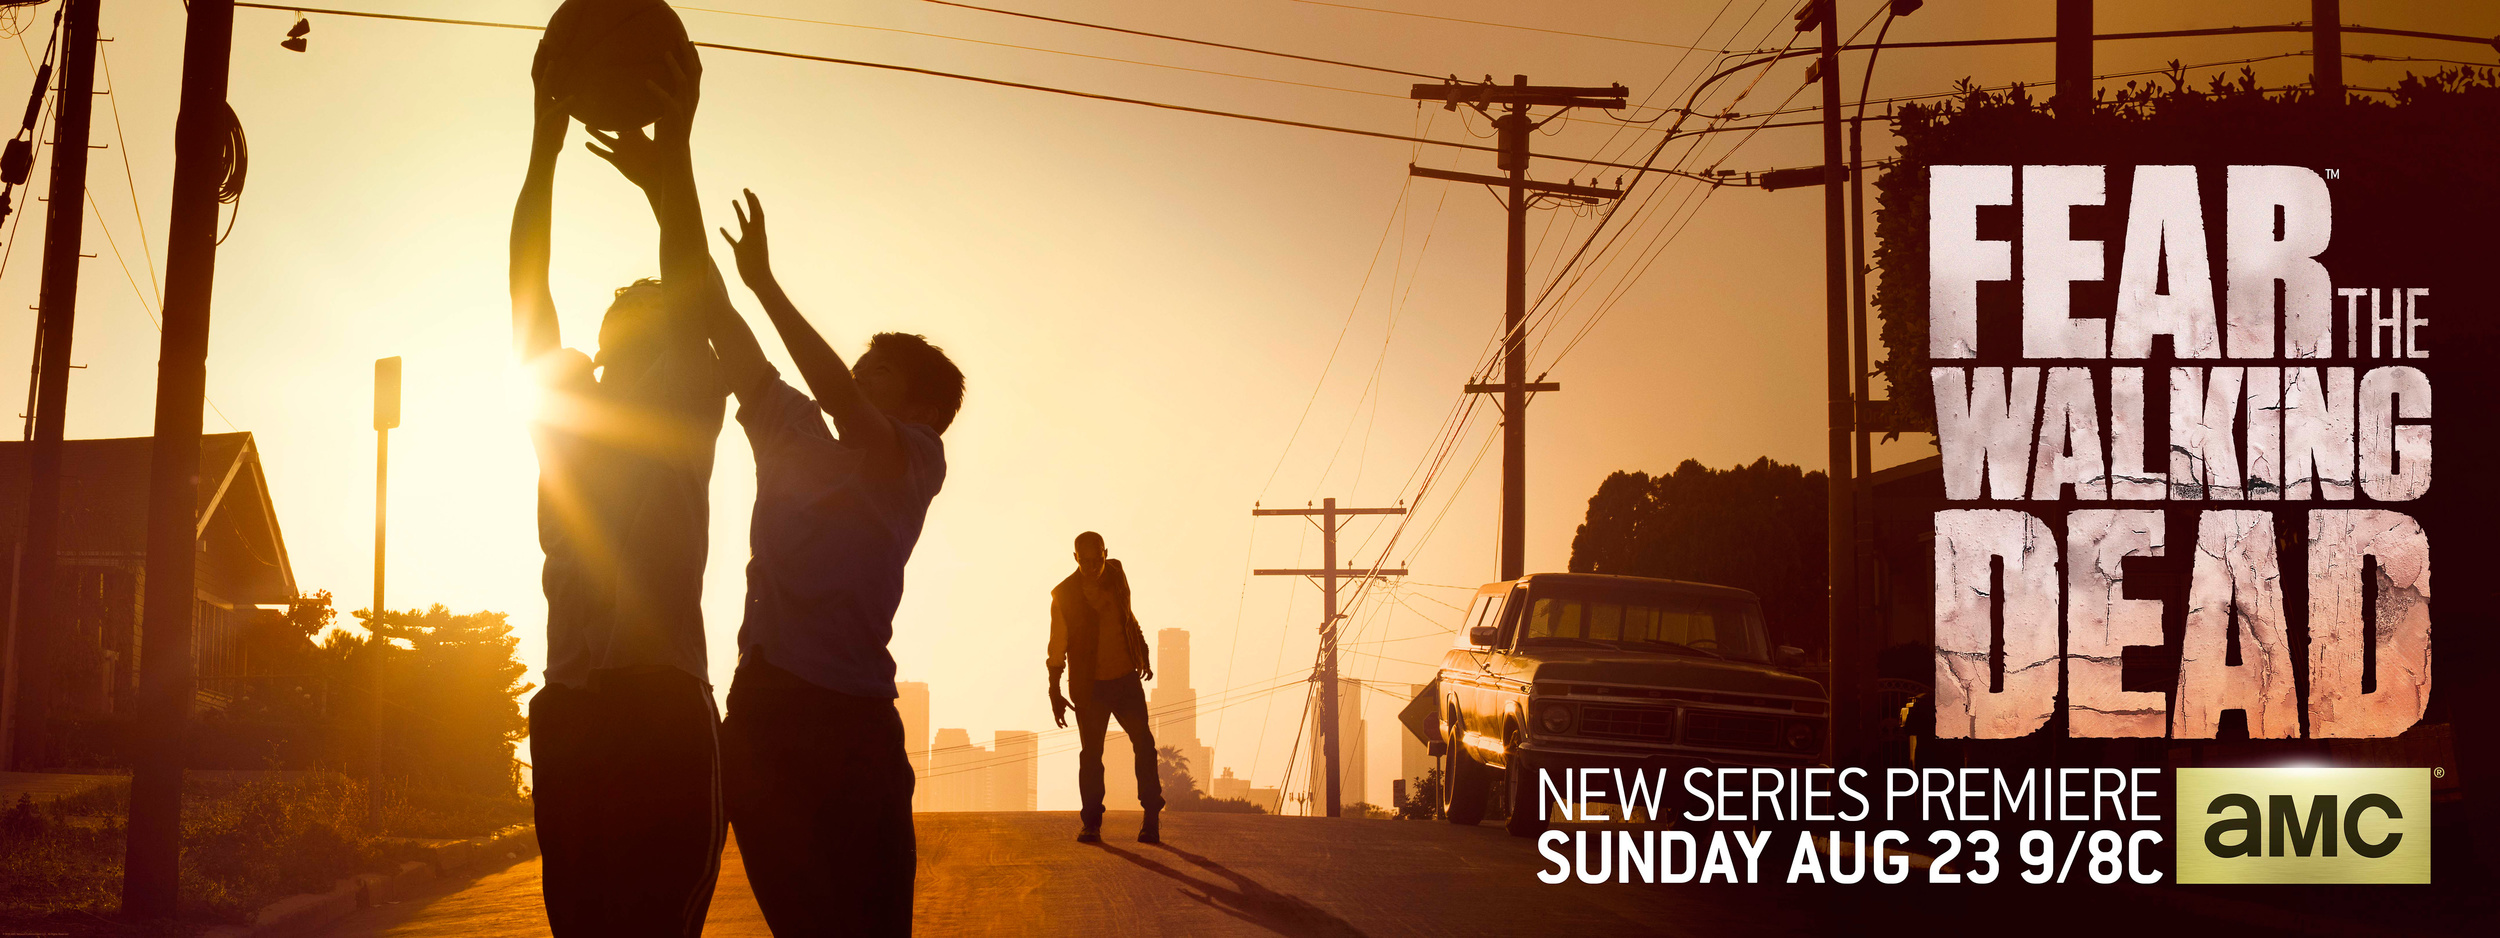 Fear the Walking Dead -     The Walking Dead spin-off is set in Los Angeles where a divorced teacher named Travis (Cliff Curtis), his fiance Madison (Kim Dickens), and her two children (Frank Dillane and Alycia Debnam-Carey) face the coming zombie apocalypse.     Click Below for Trailer: